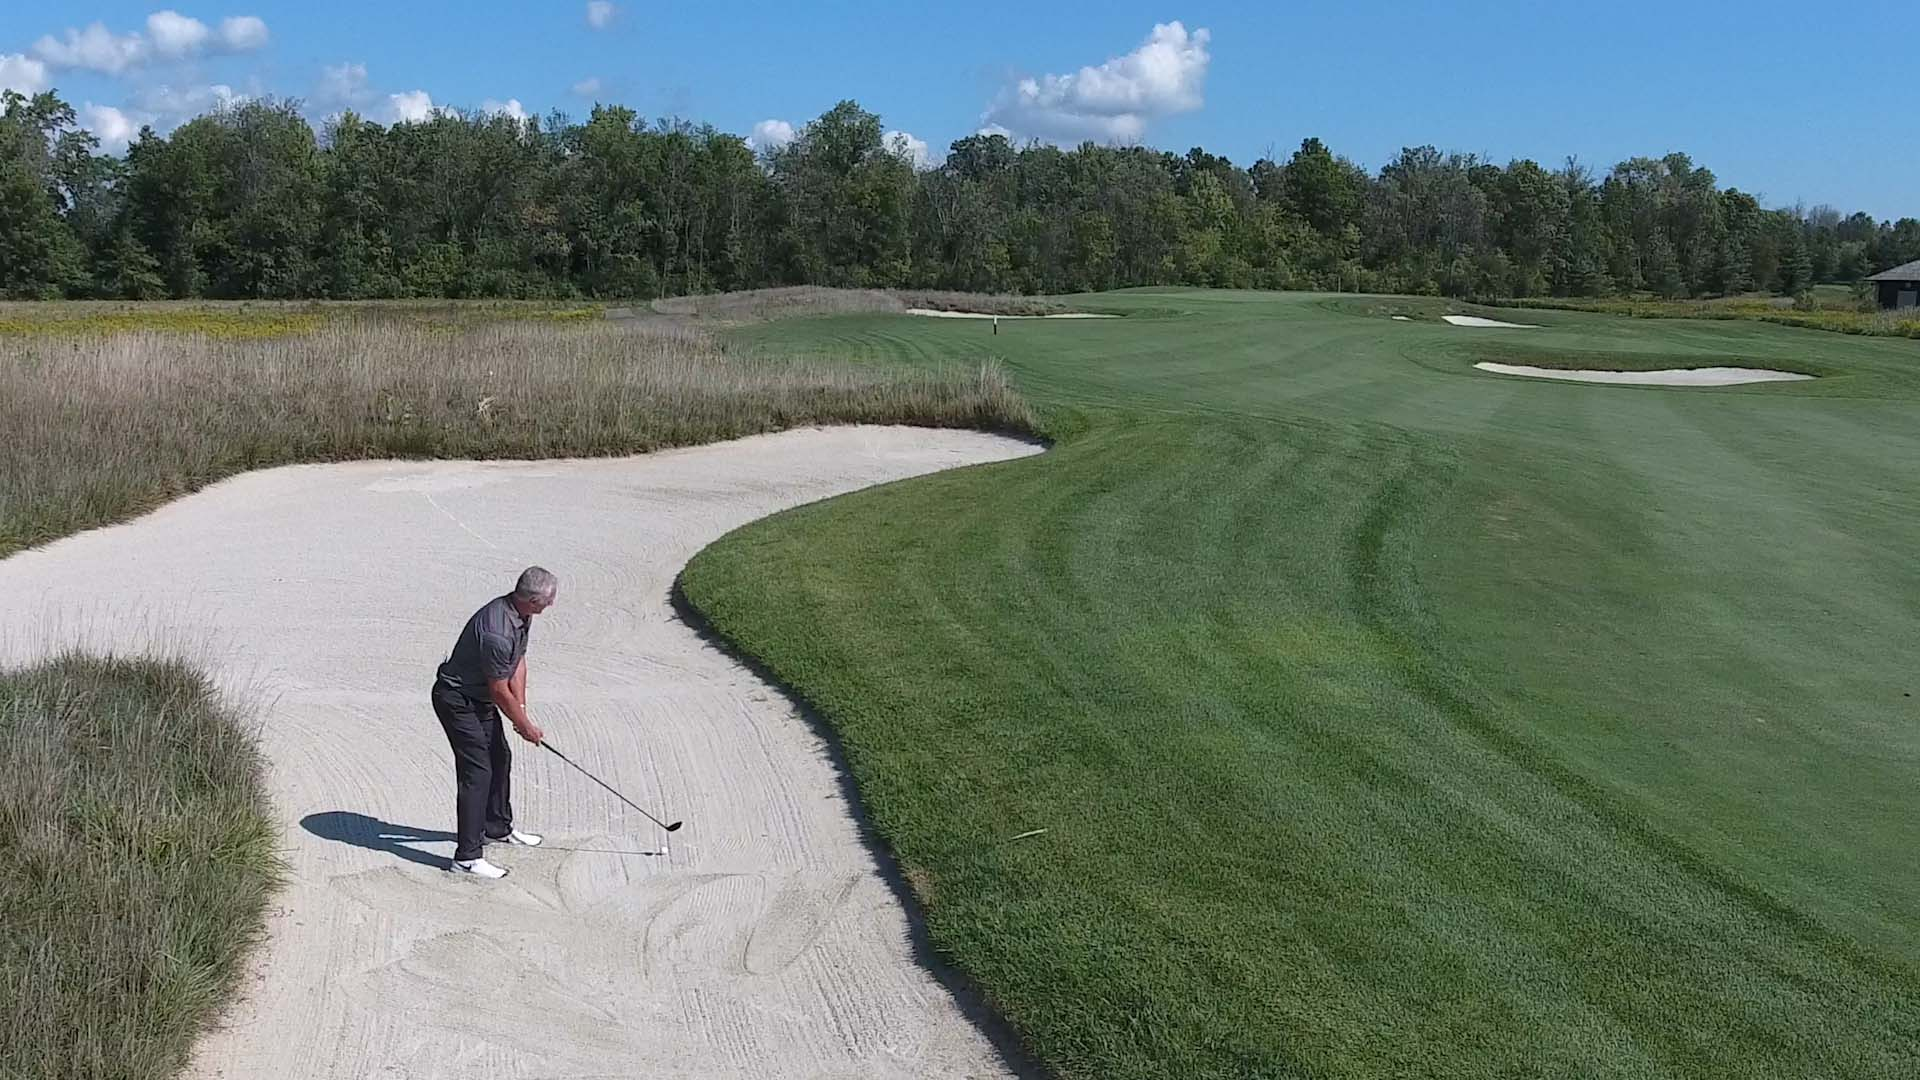 Hitting from a Fairway Bunker